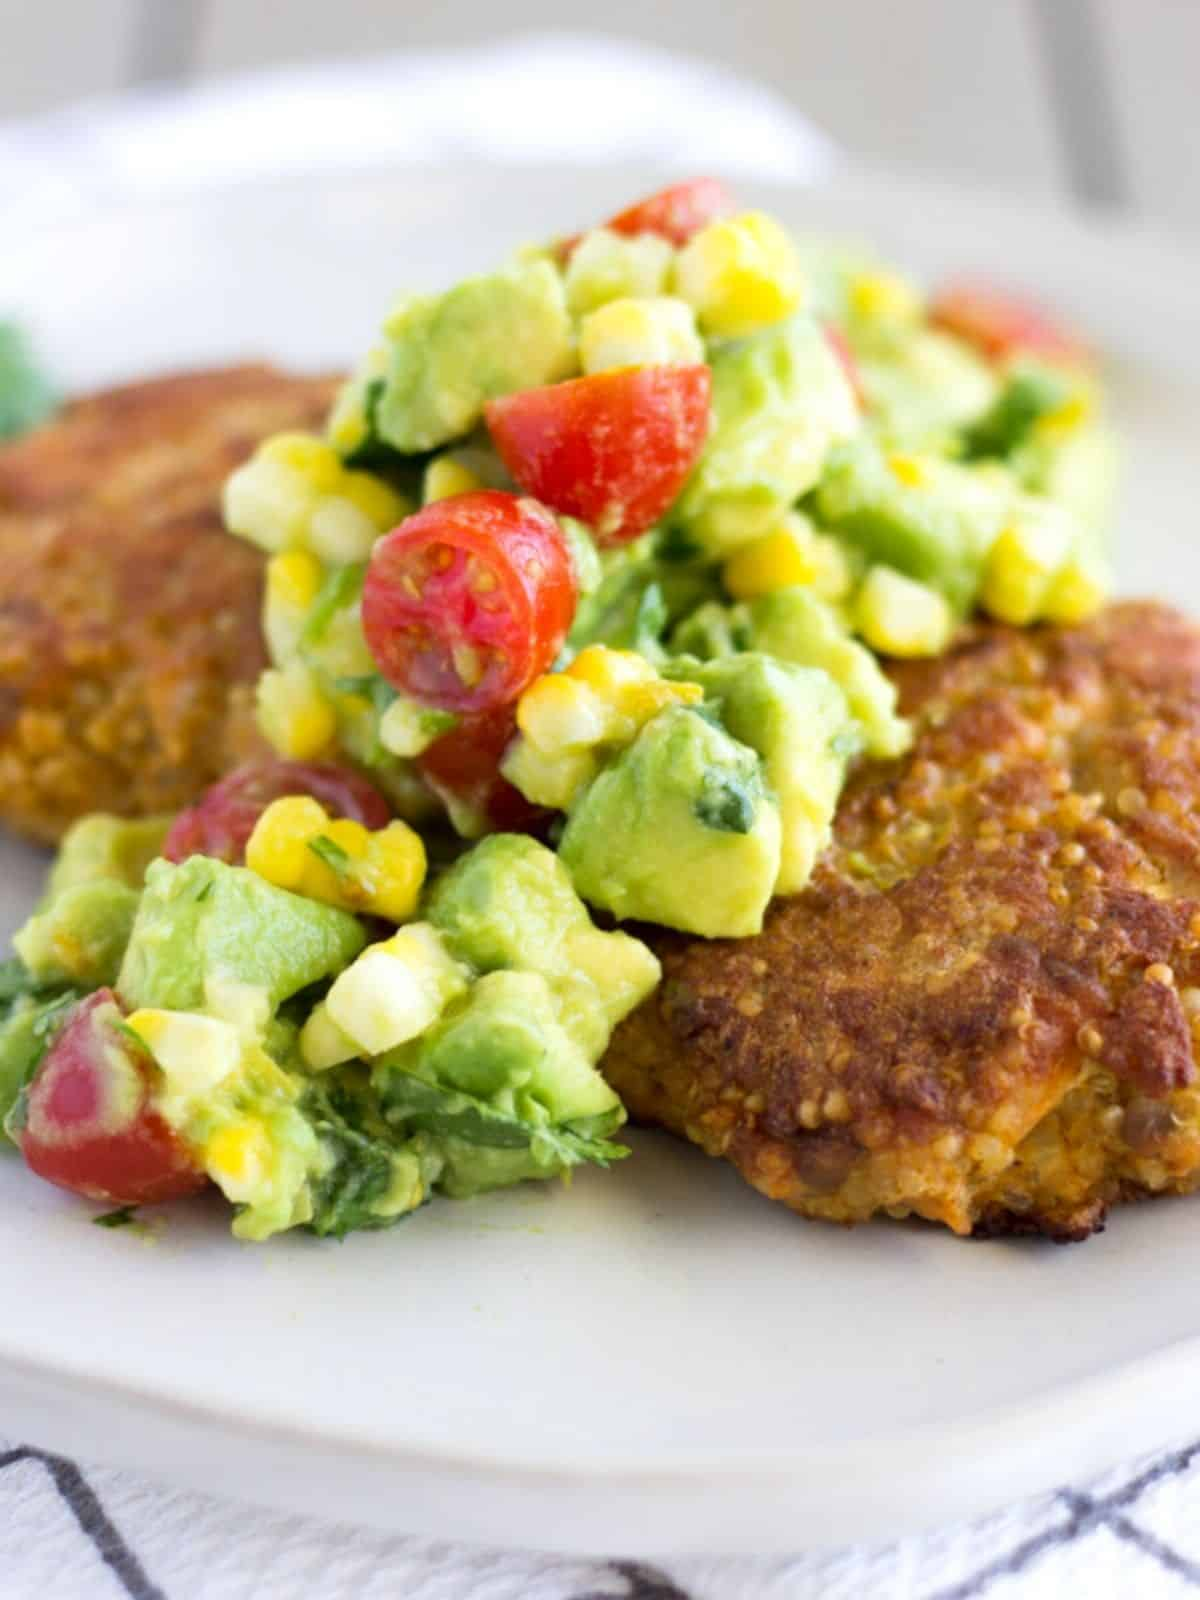 Up close view of avocado, corn, and tomato salsa on top of salmon cake.